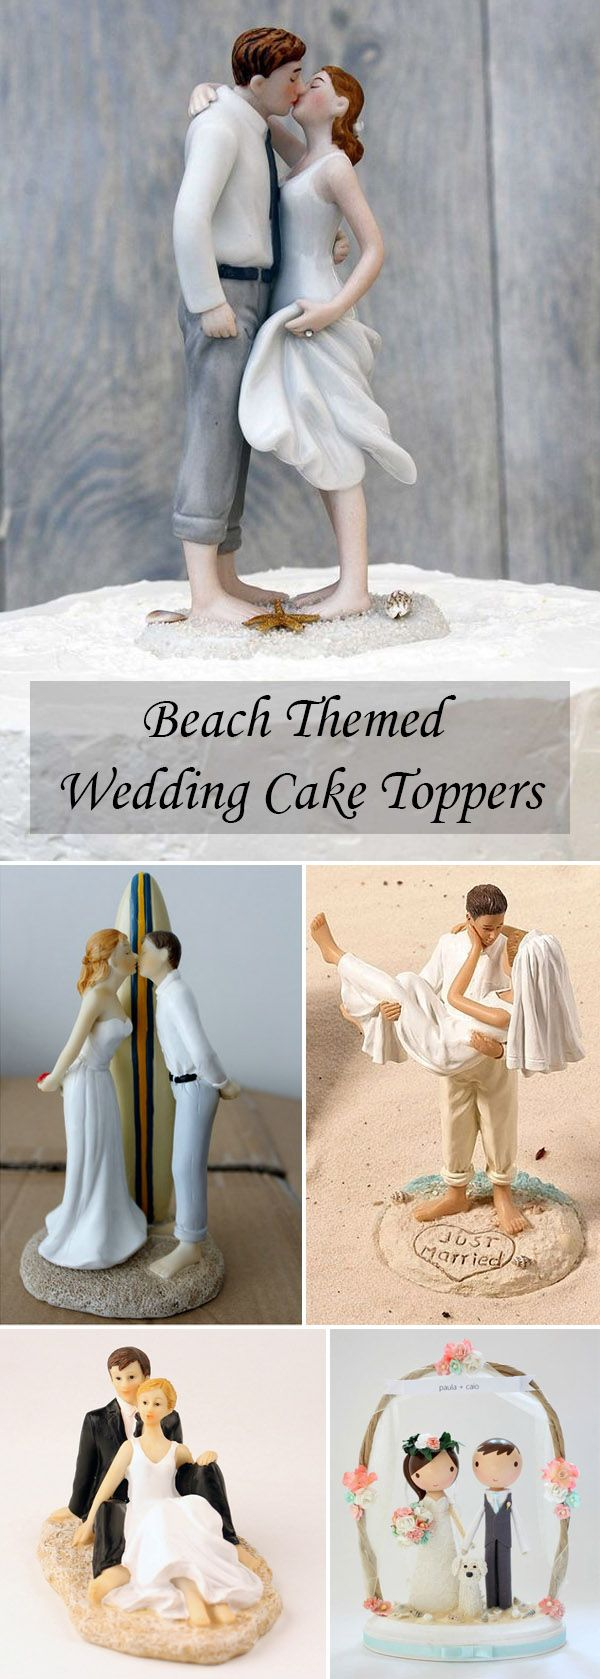 beach wedding cake toppers wedding cake toppers funny Different and Funny Wedding Gifts and Cake Toppers